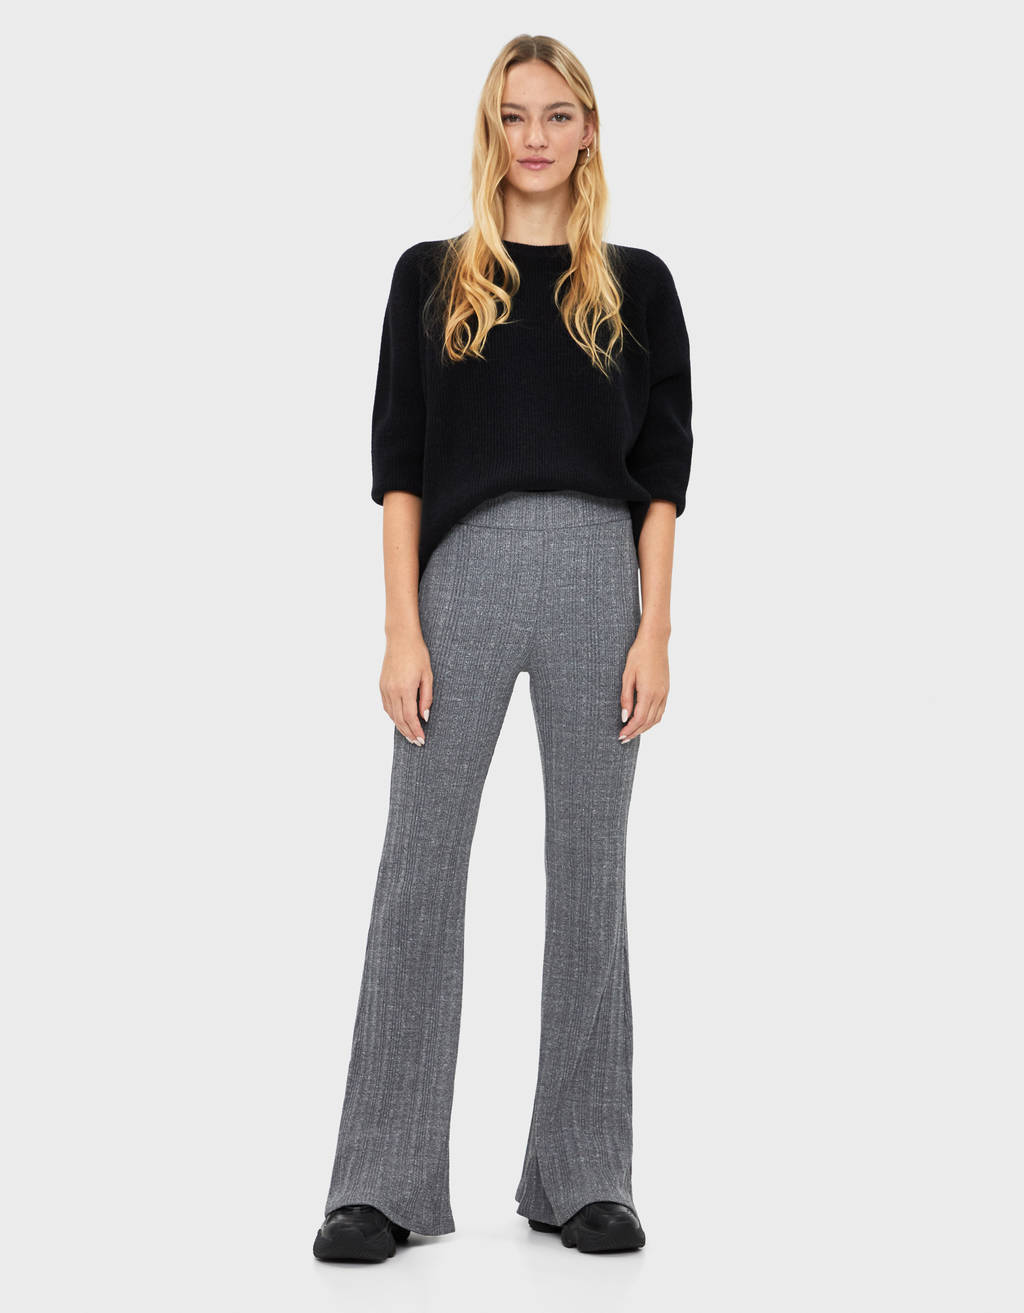 Ribbed bell-bottom pants